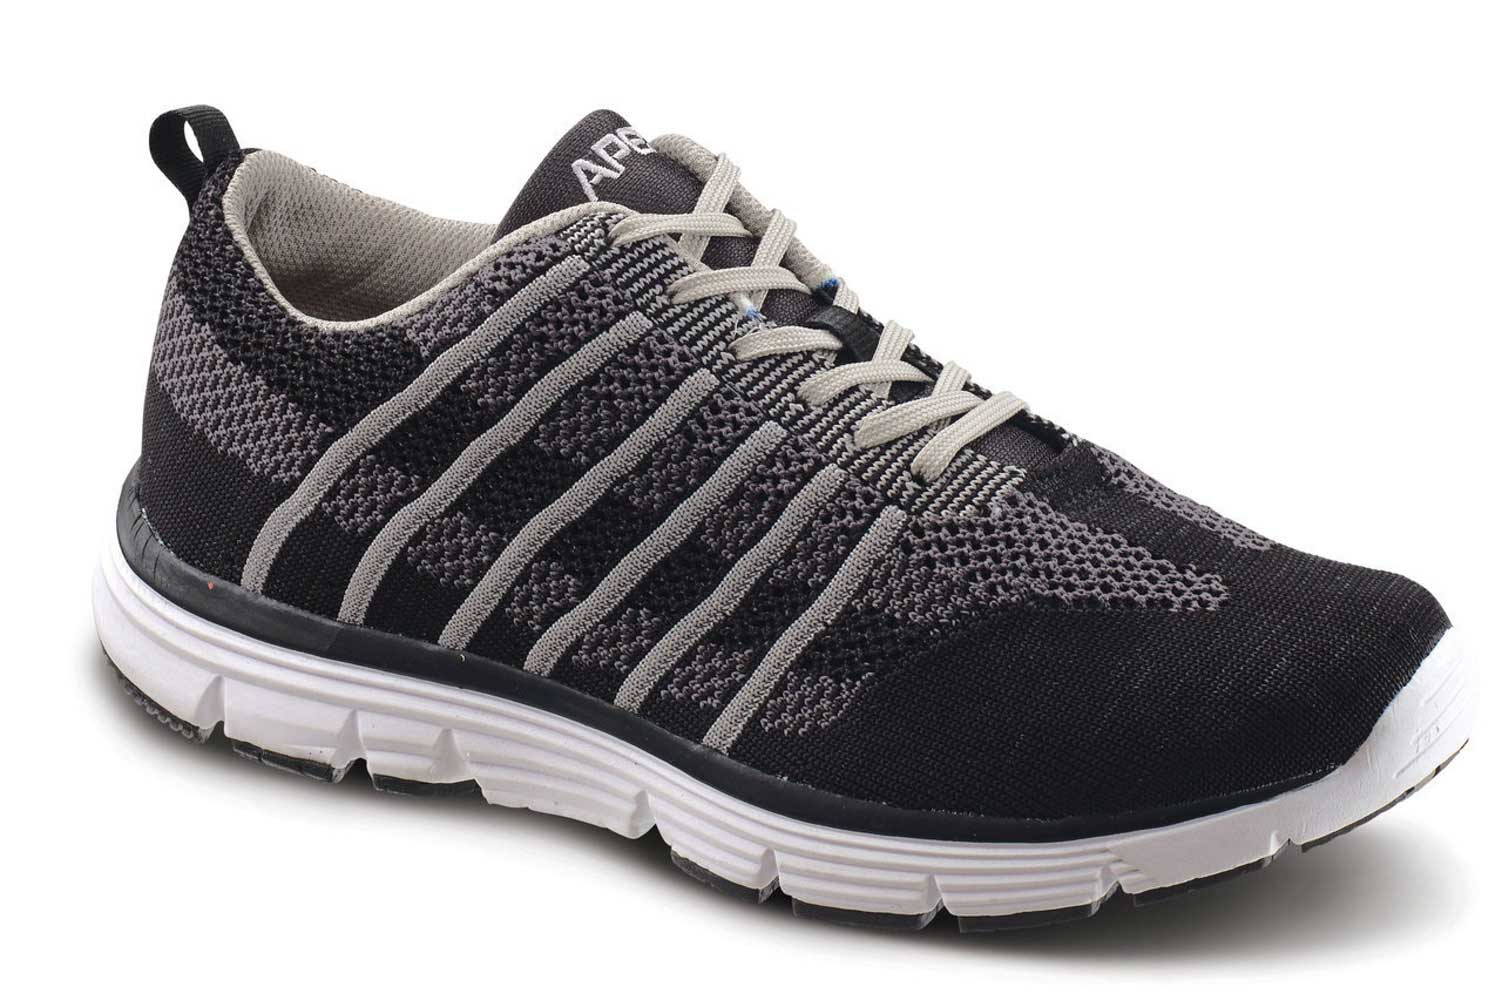 Apex Shoes Athletic Knit Lace Up A7000M - Men's Comfort Therapeutic Athletic Shoe - Medium (C) - Extra Wide (4E) - Extra Depth for Orthotics